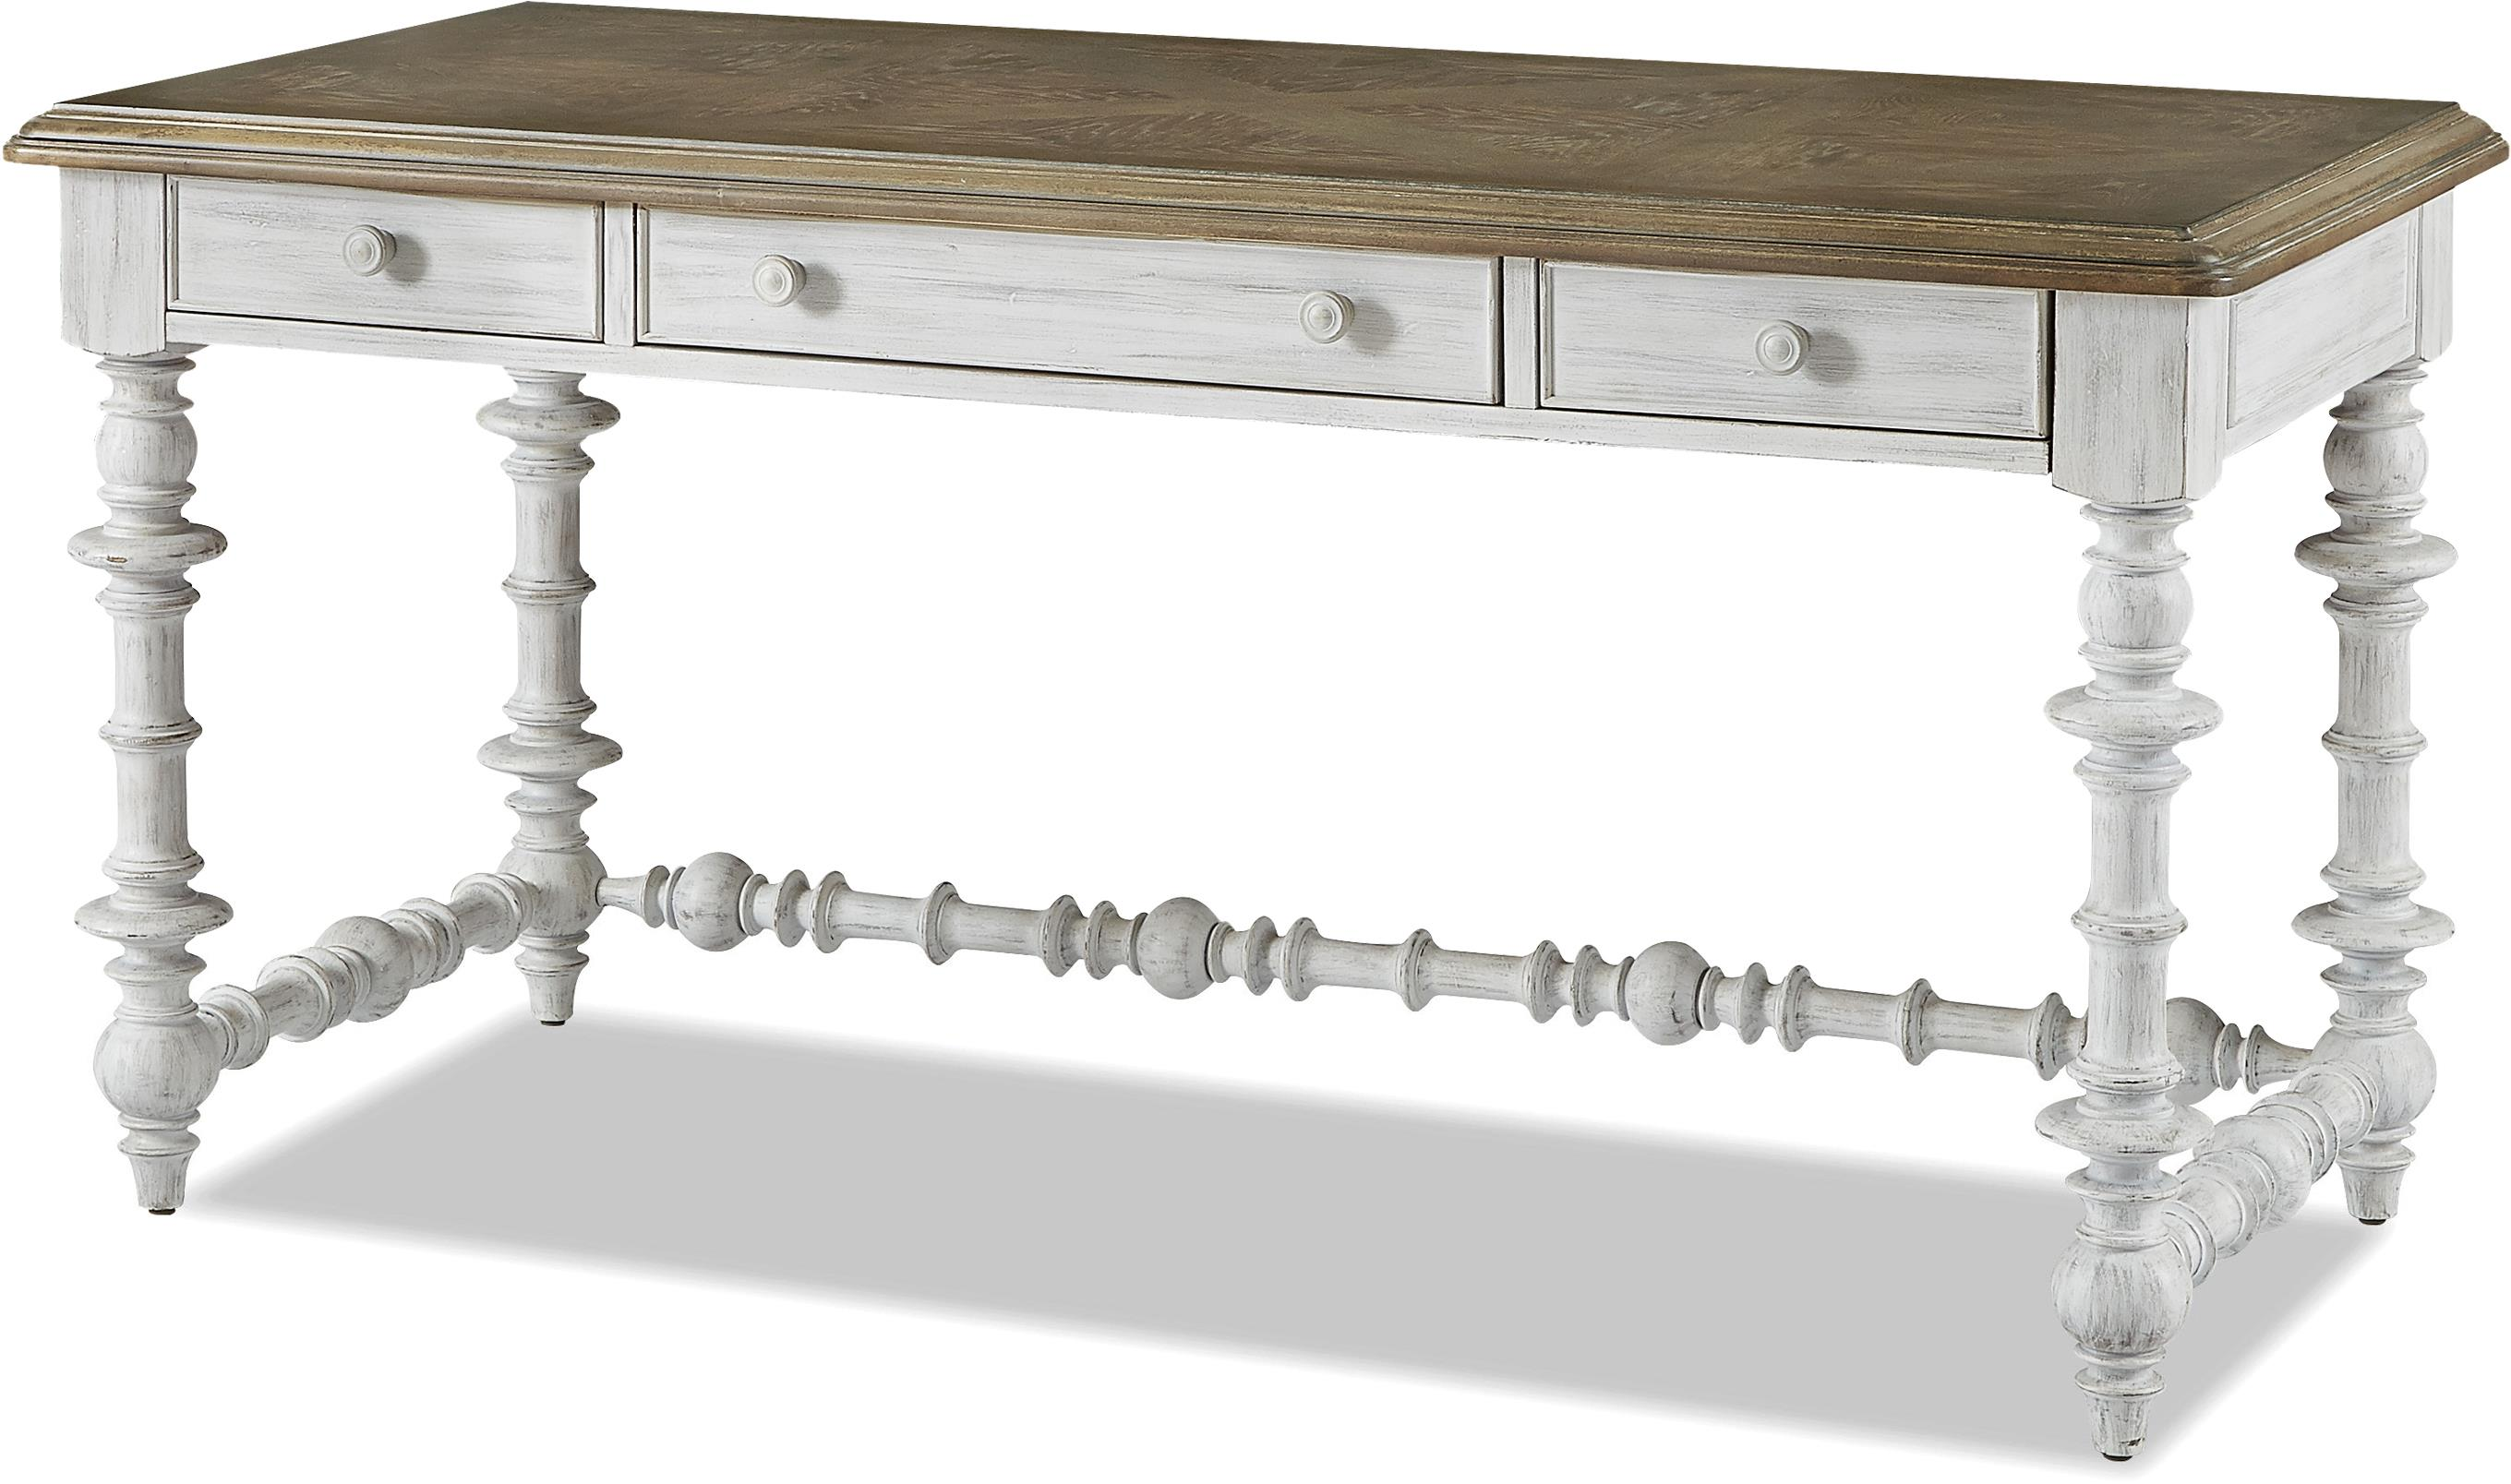 Paula Deen By Universal Dogwood The Note Worthy Desk With Spool Turn Detail Dream Home